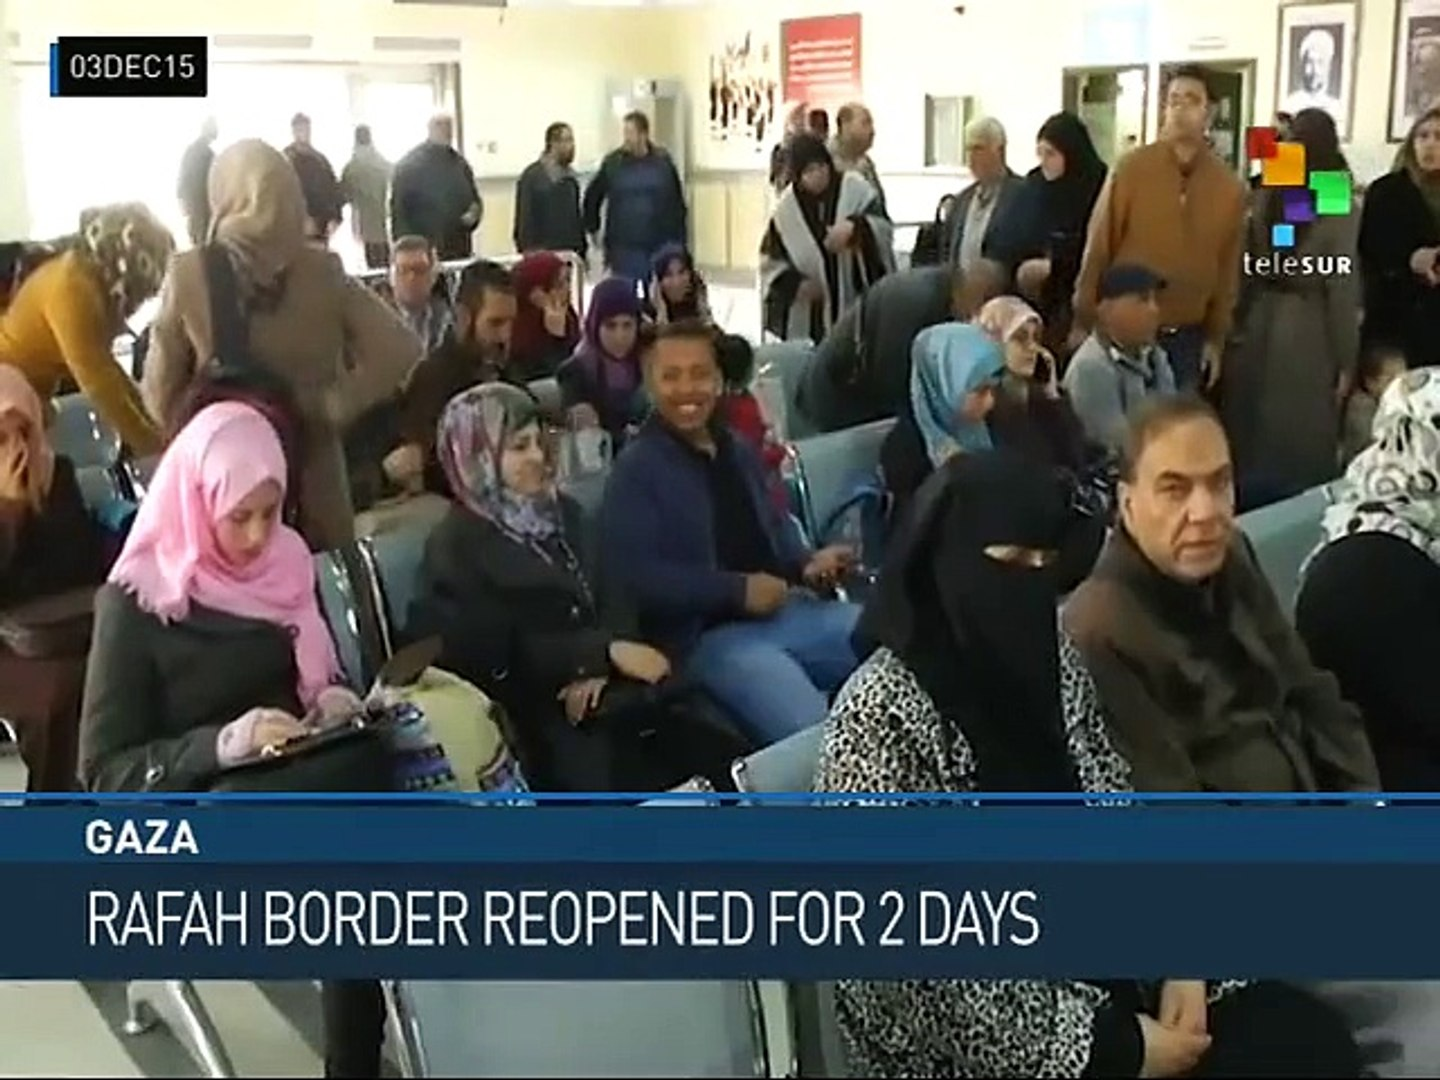 Palestine: Egypt to Open Rafah Border Crossing for 2 Days